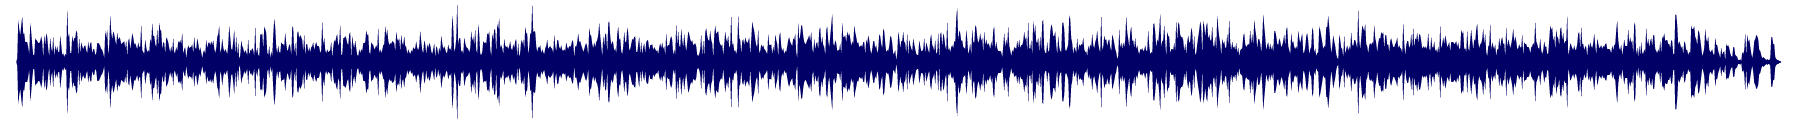 waveform of track #77508